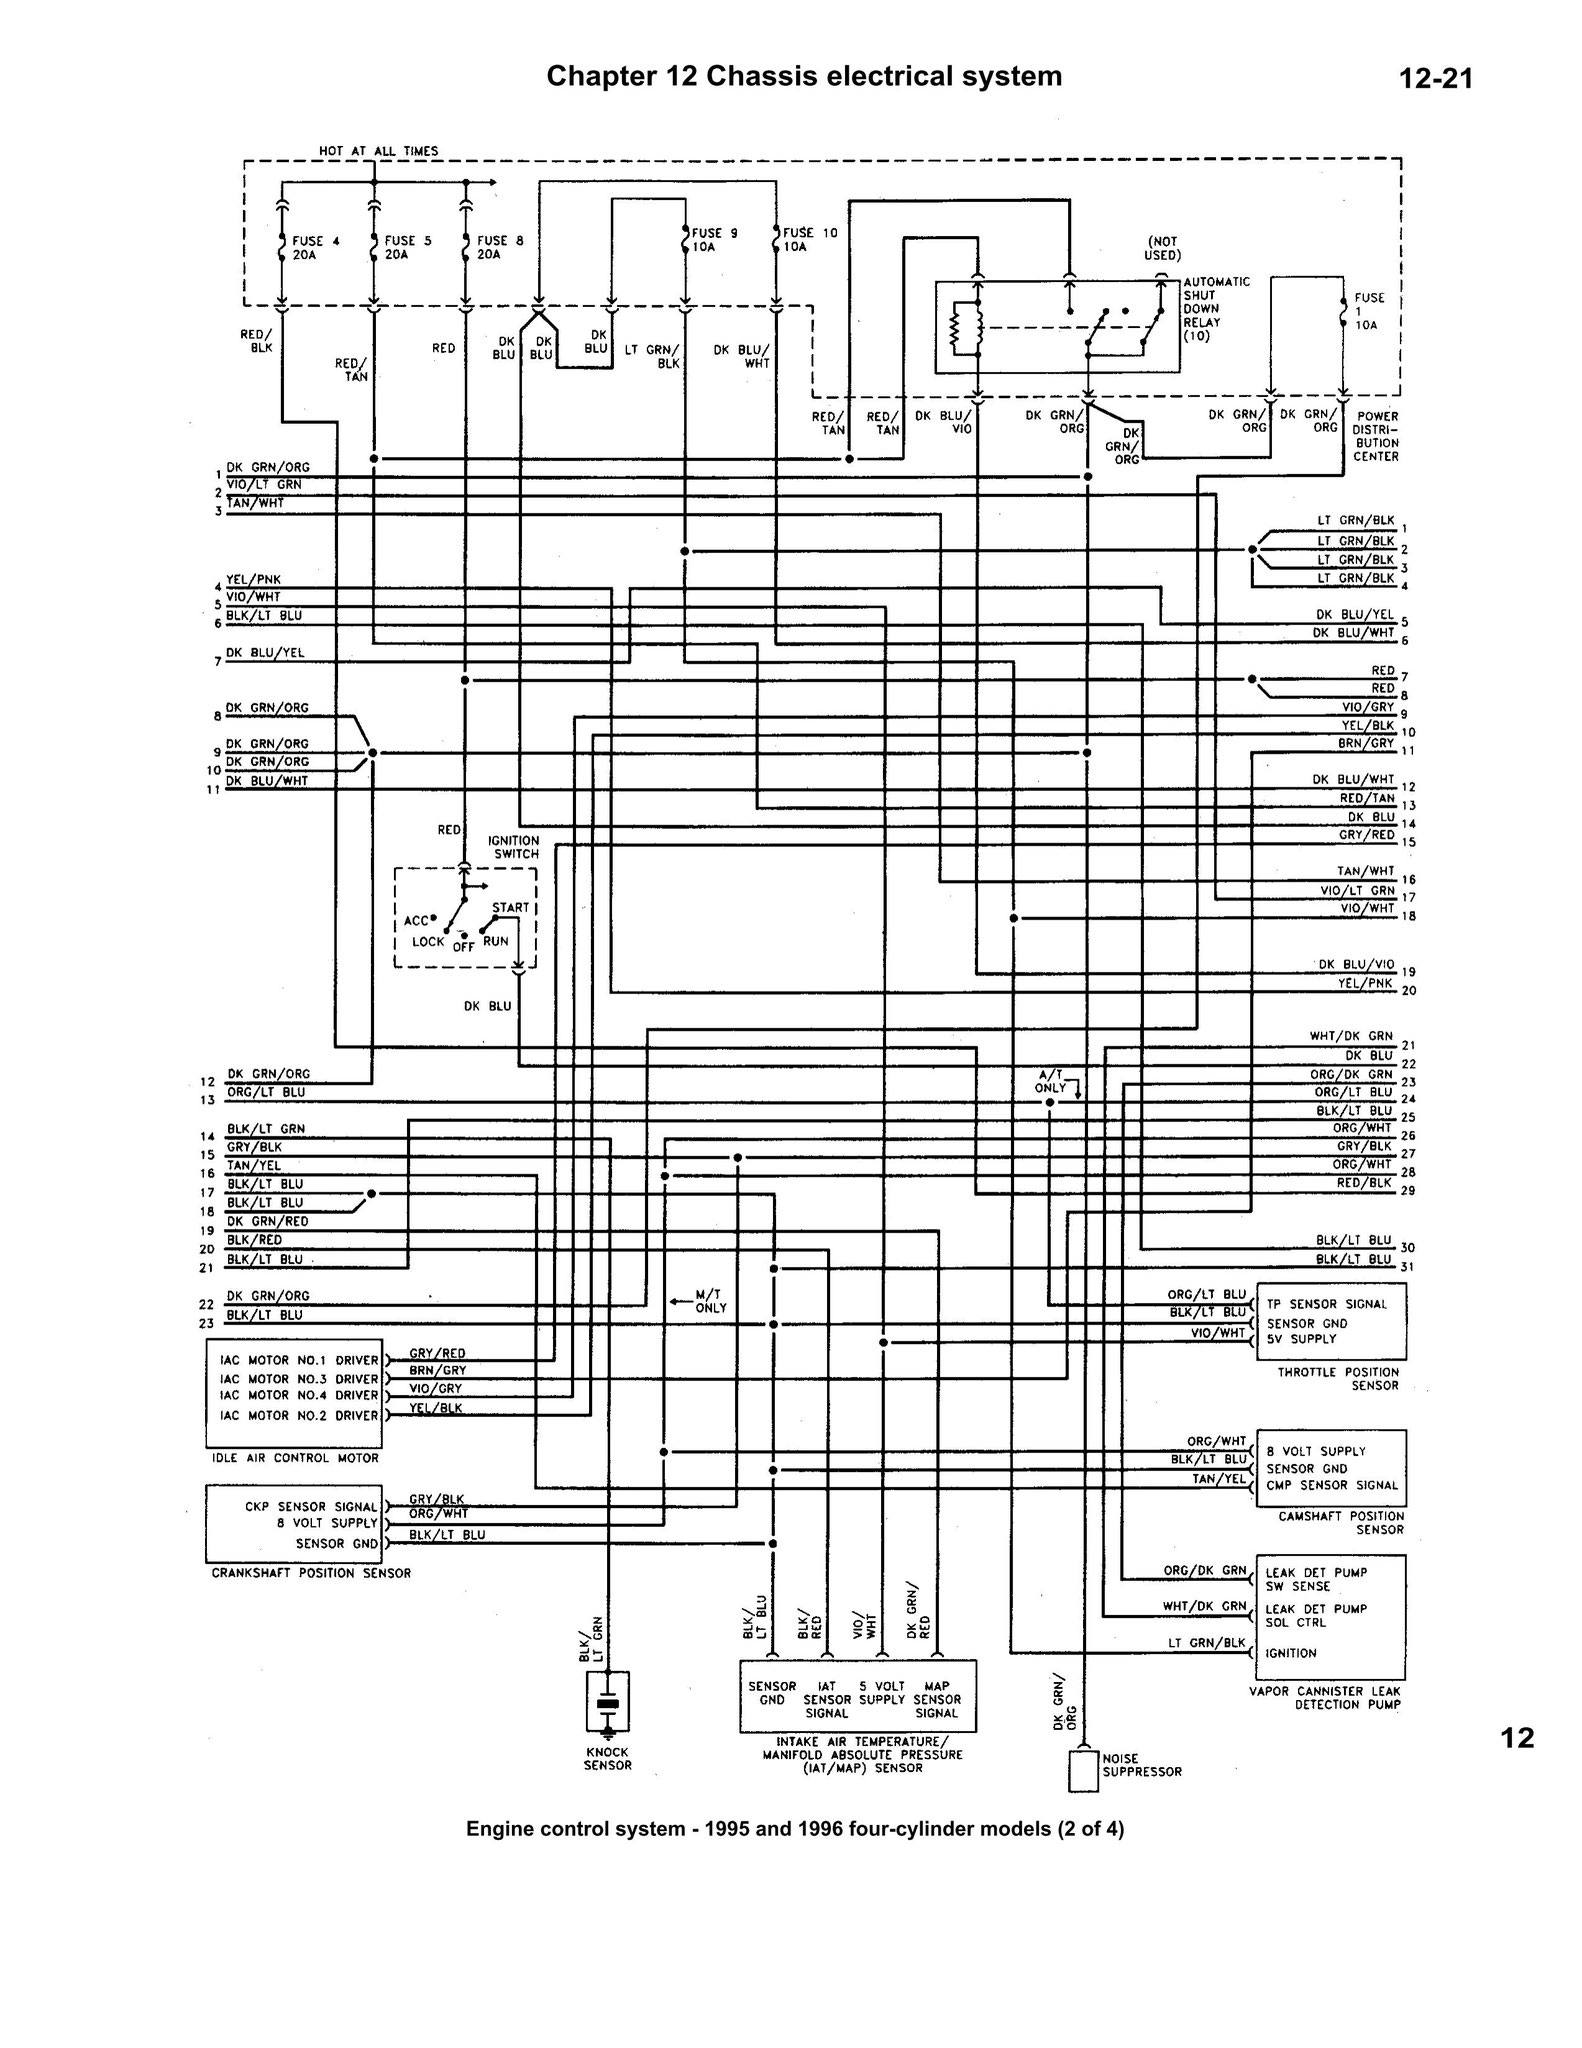 2005 chrysler crossfire wiring diagram chrysler town country 2005 door wiring wiring diagram data  chrysler town country 2005 door wiring